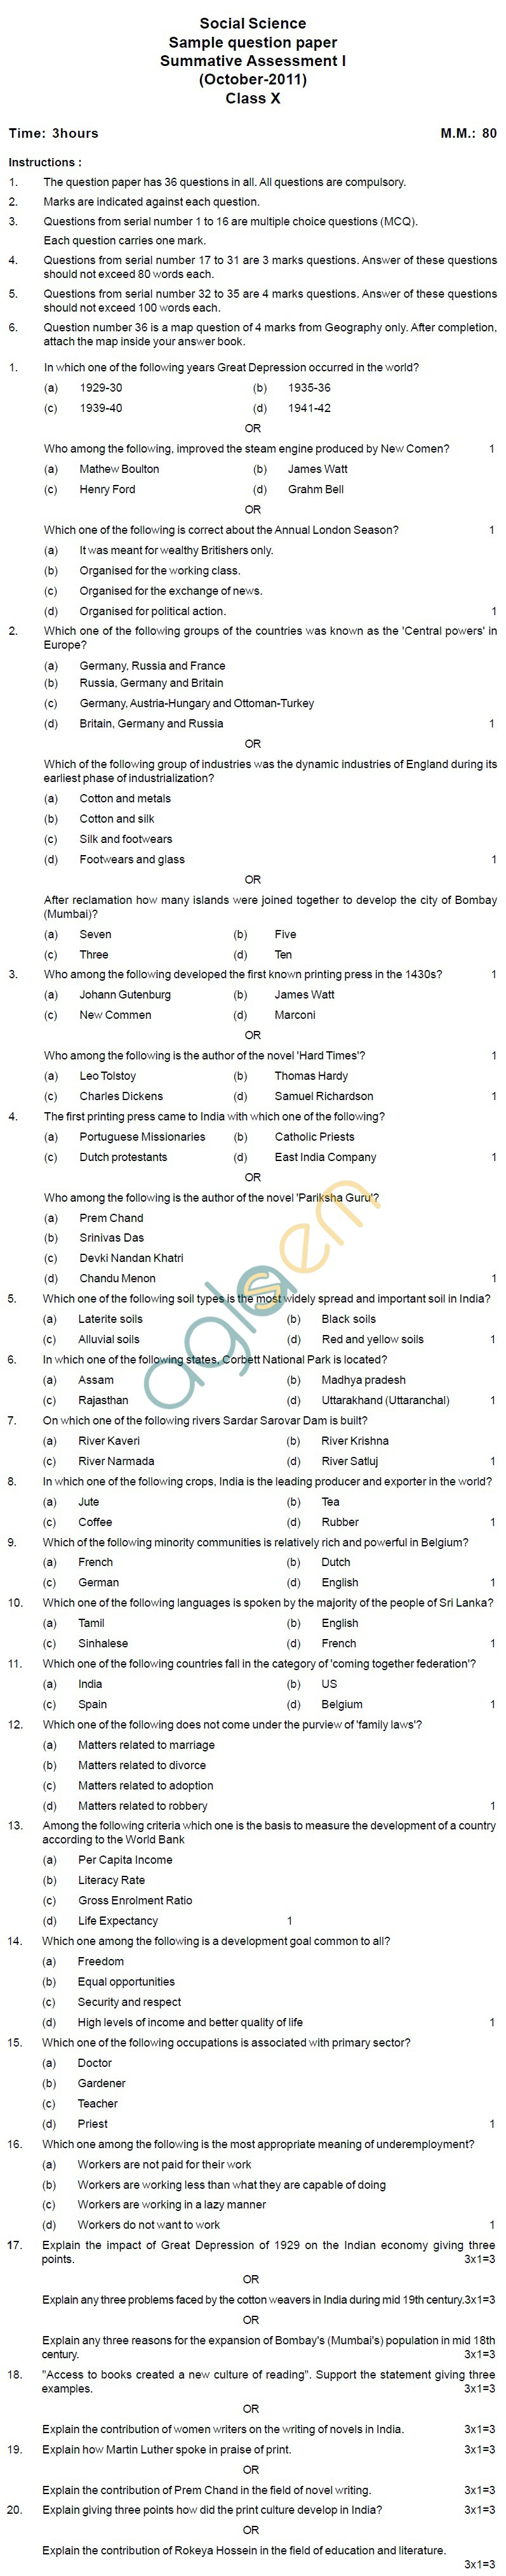 CBSE Board Exam 2013 Sample Papers (SA1) Class X - Social Science